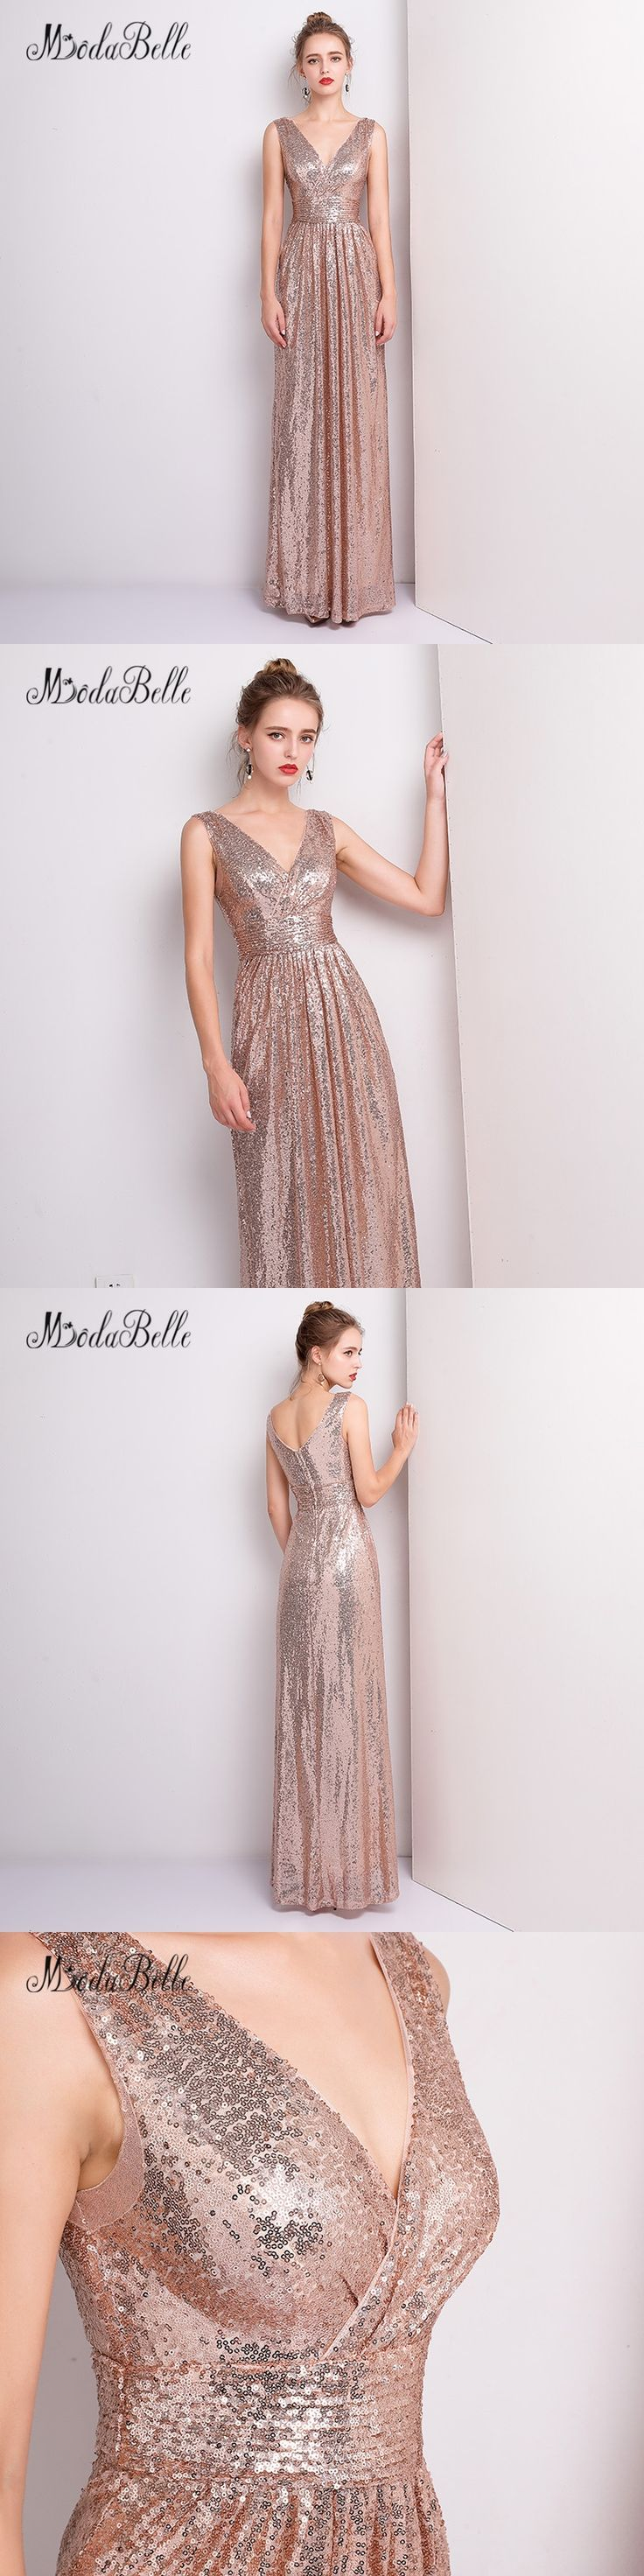 modabelle 2018 Rose Gold Sequin Bridesmaid Dress Long Adult Cheap Sparkle Wedding Party Dresses Vestido De Dama De Honra